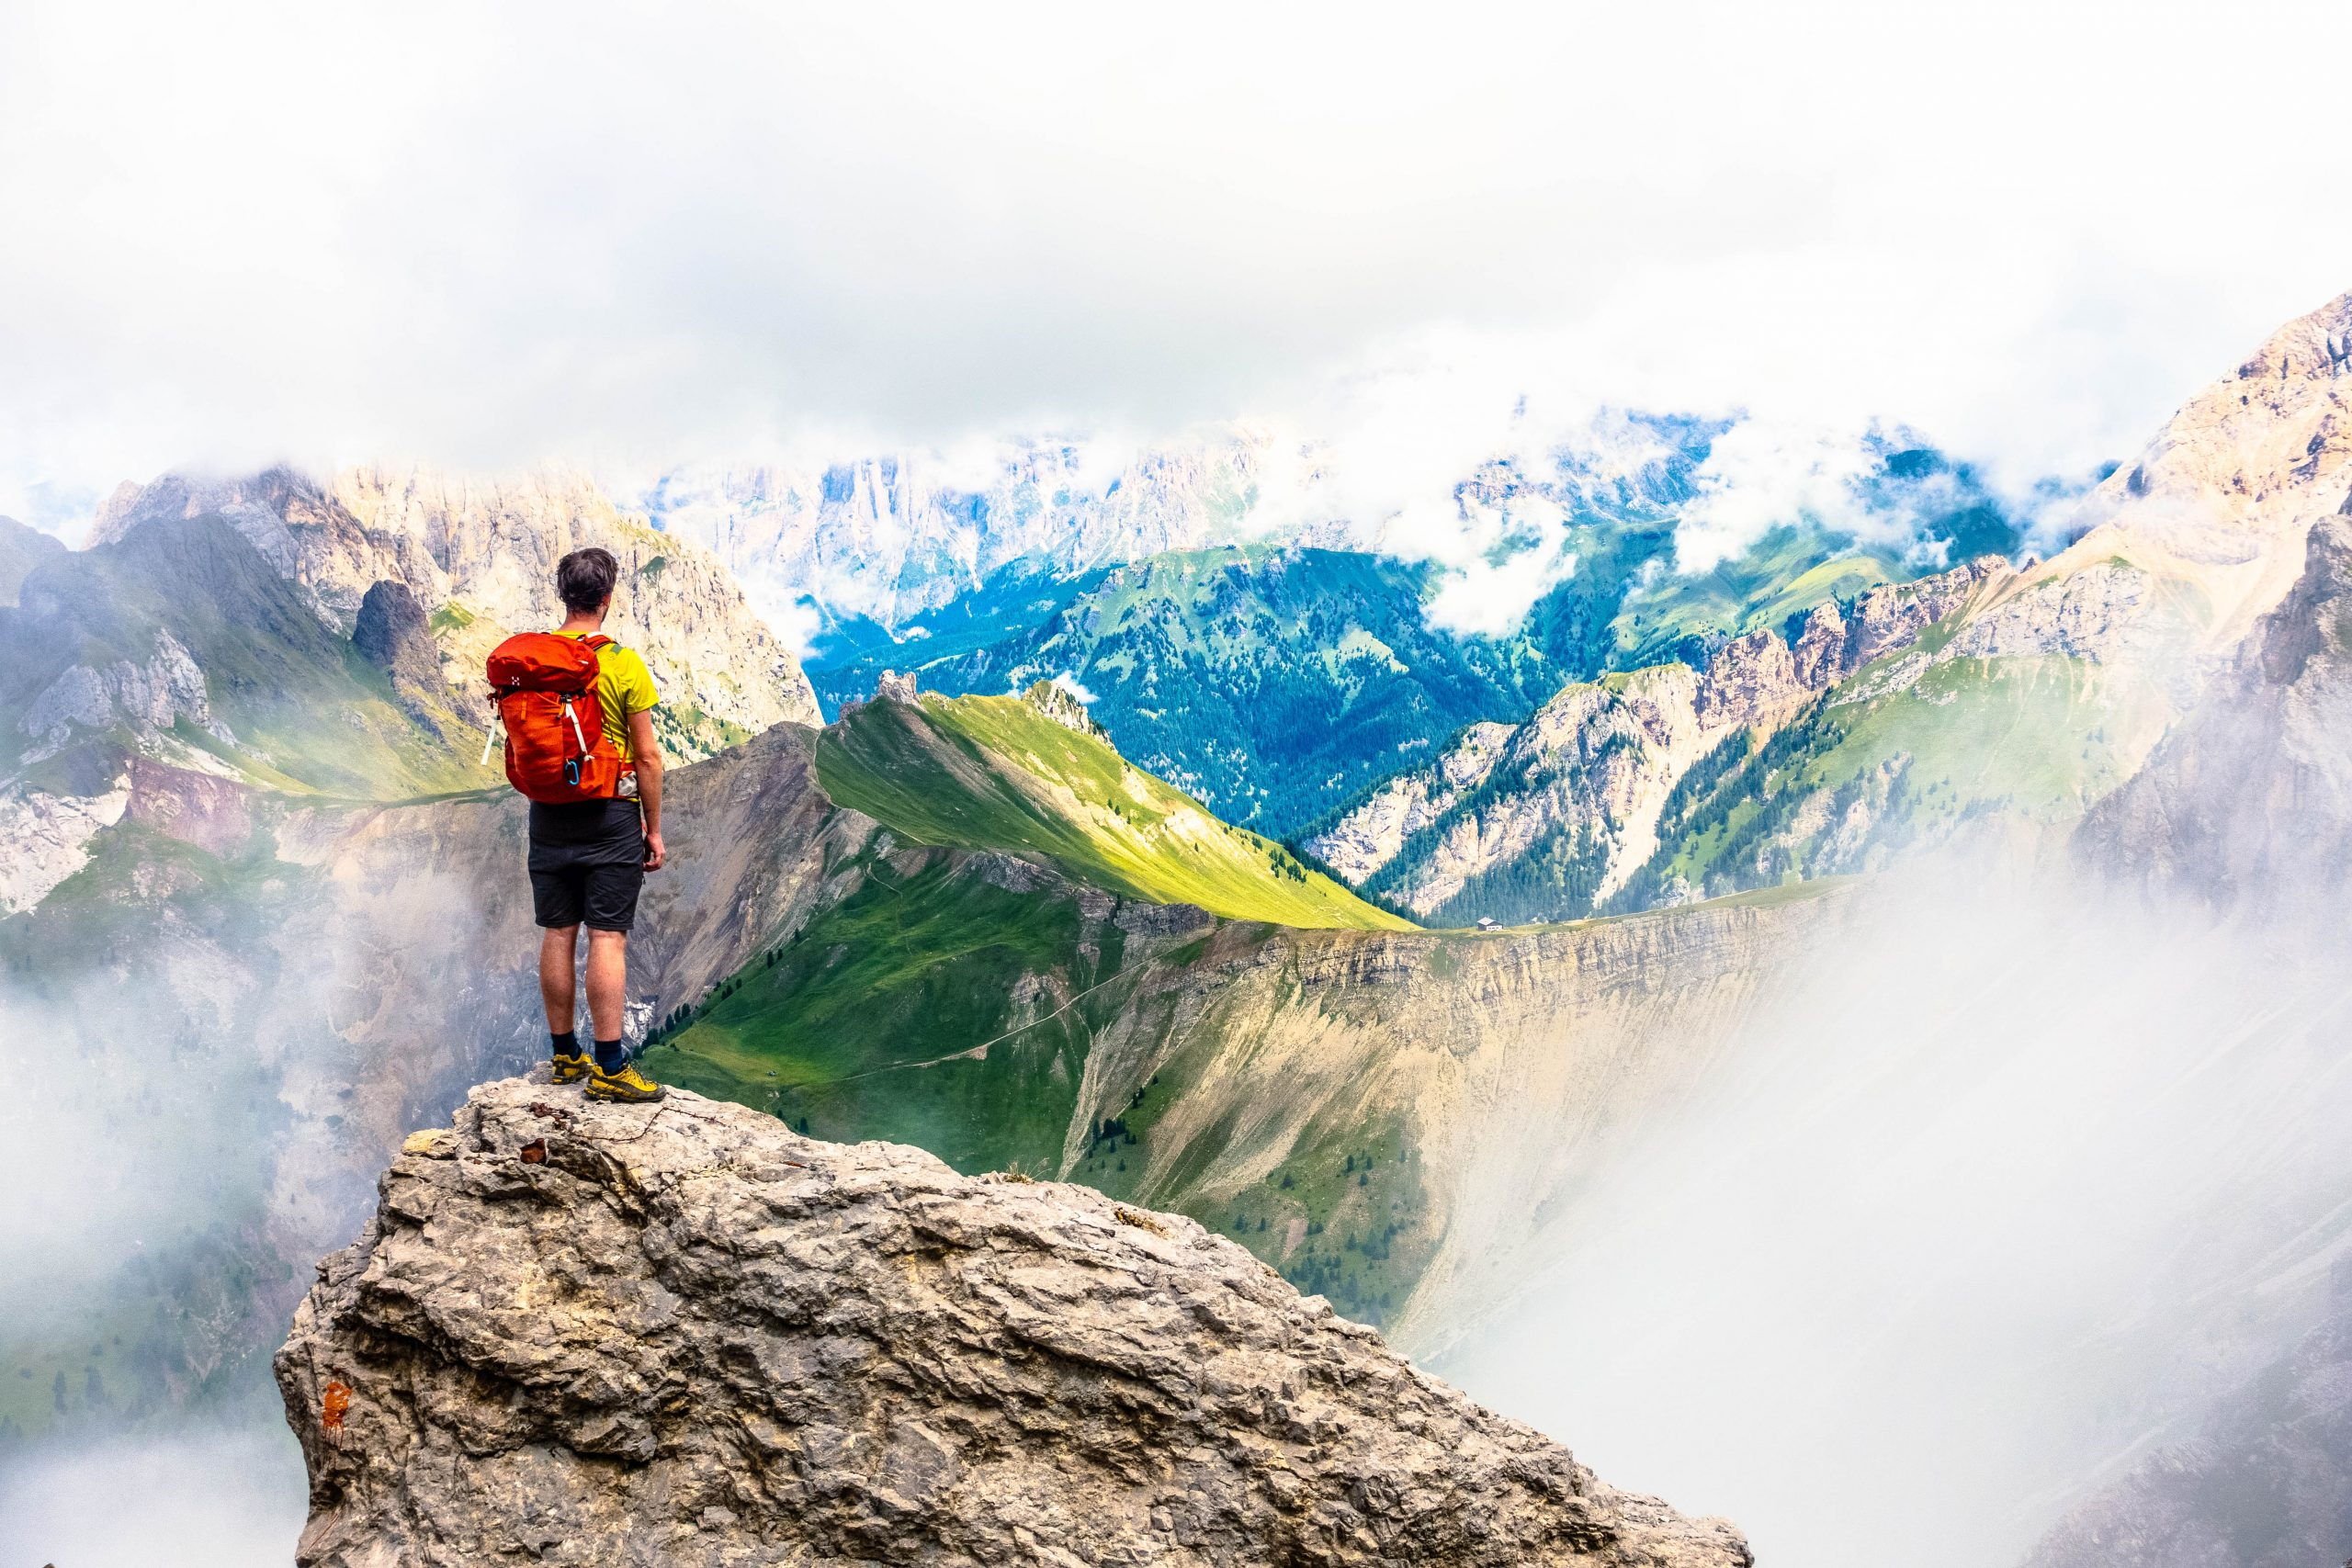 """An image of a man standing upon a rock overlooking green and blue mountains swathed with mist and fog - used as a featured image for the article entitled """"Why Travel? 9 Reasons Why You Need to Go Out and See the World"""" on phmillennia"""